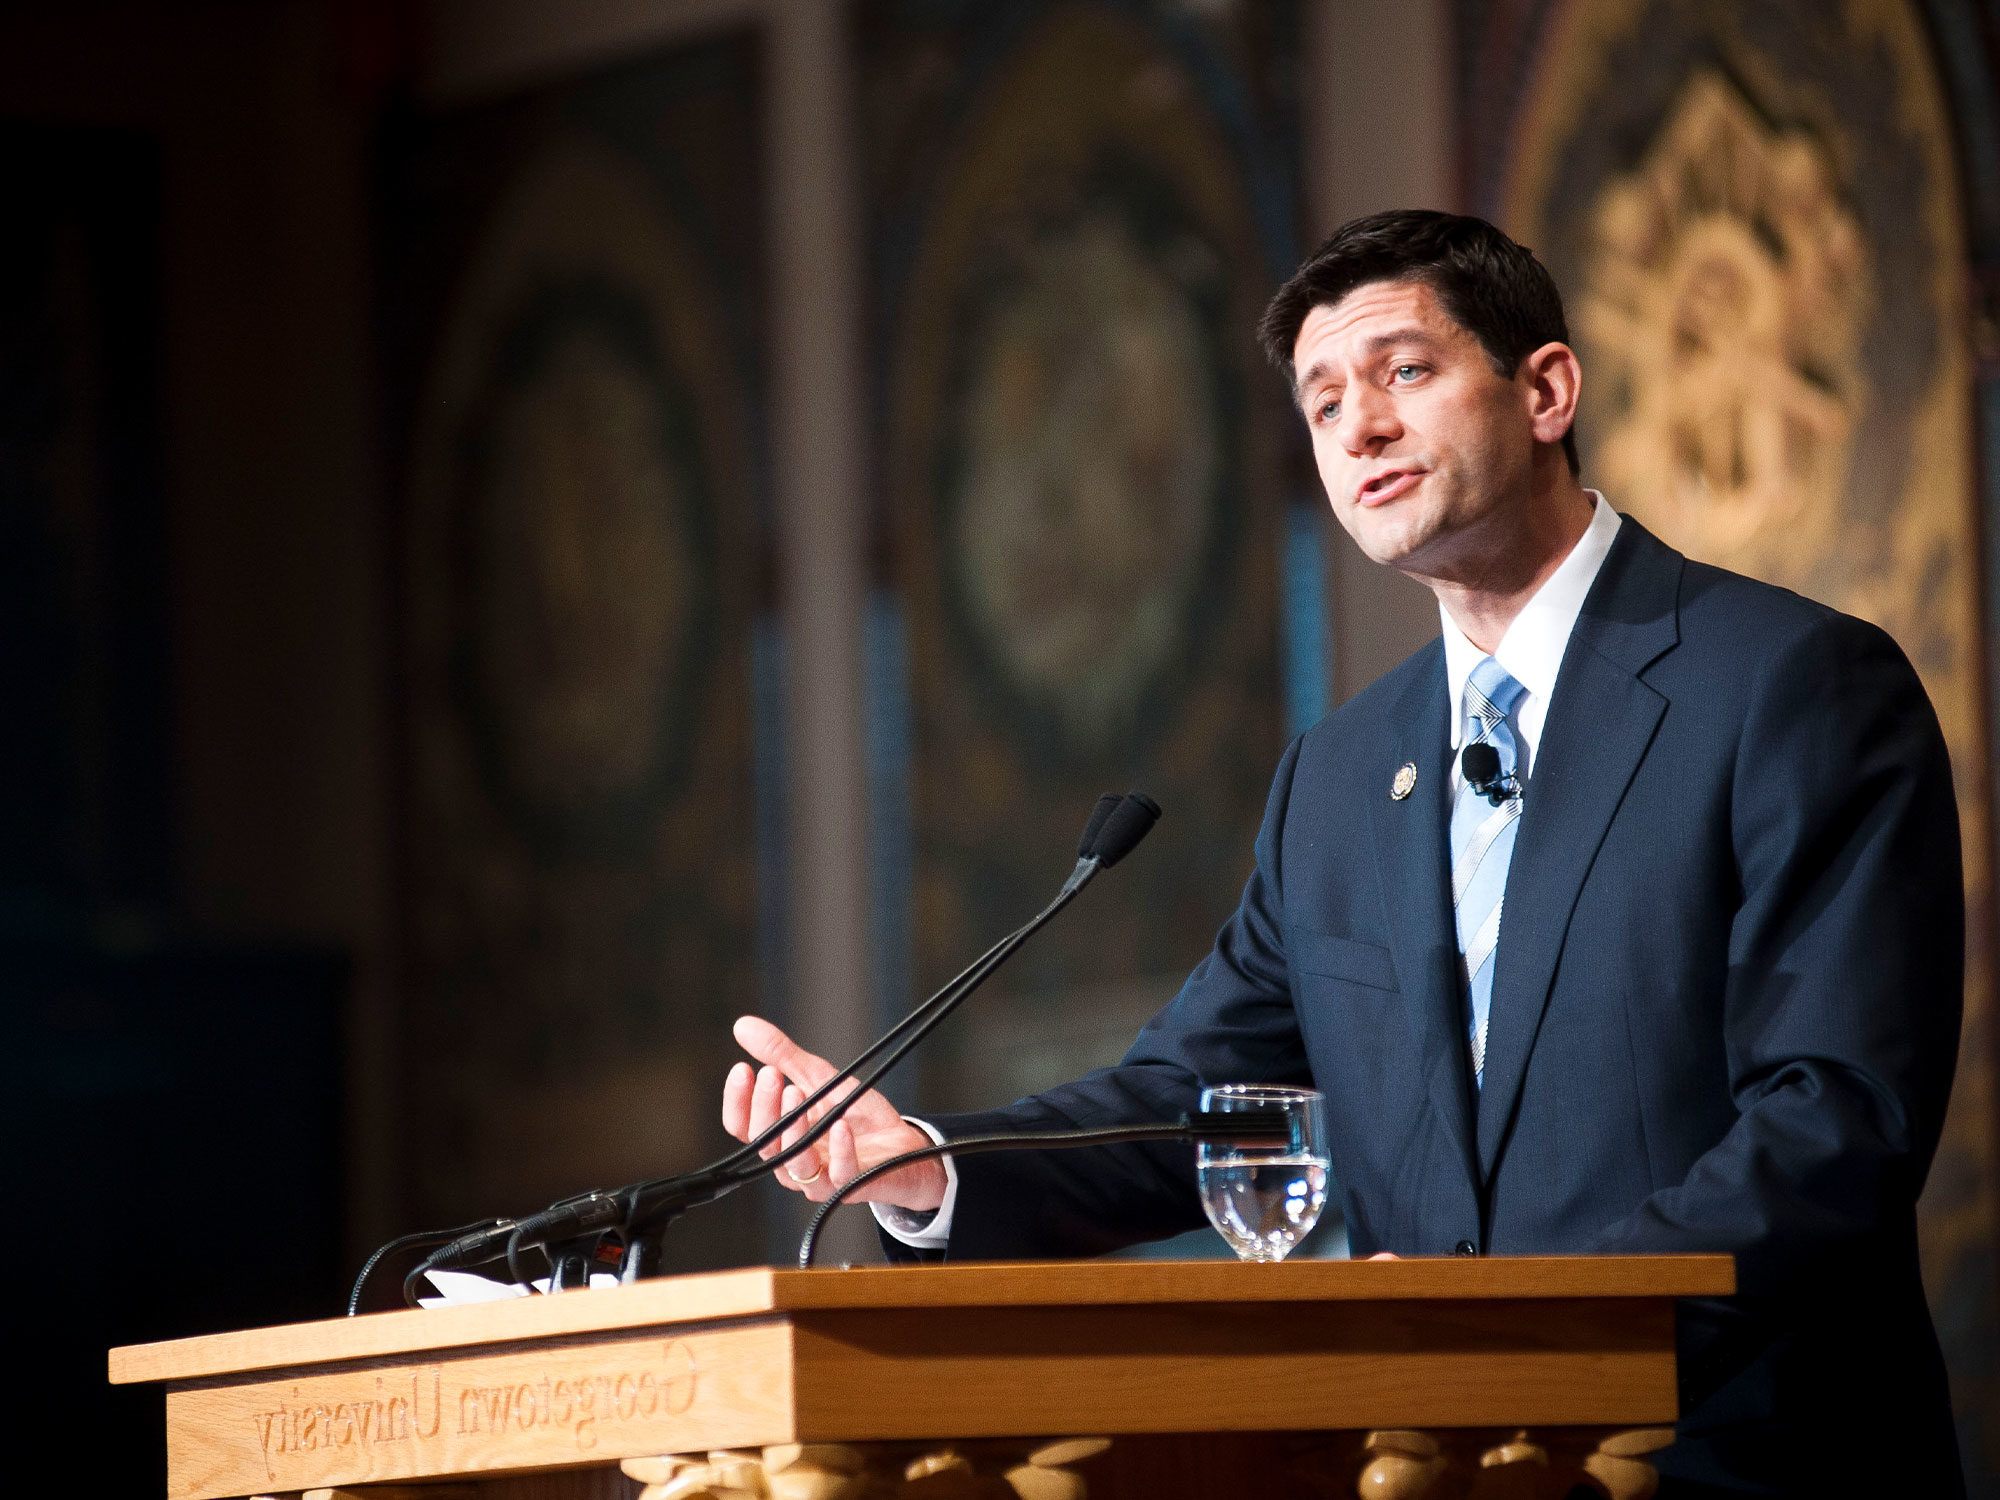 Paul Ryan speaks at Georgetown